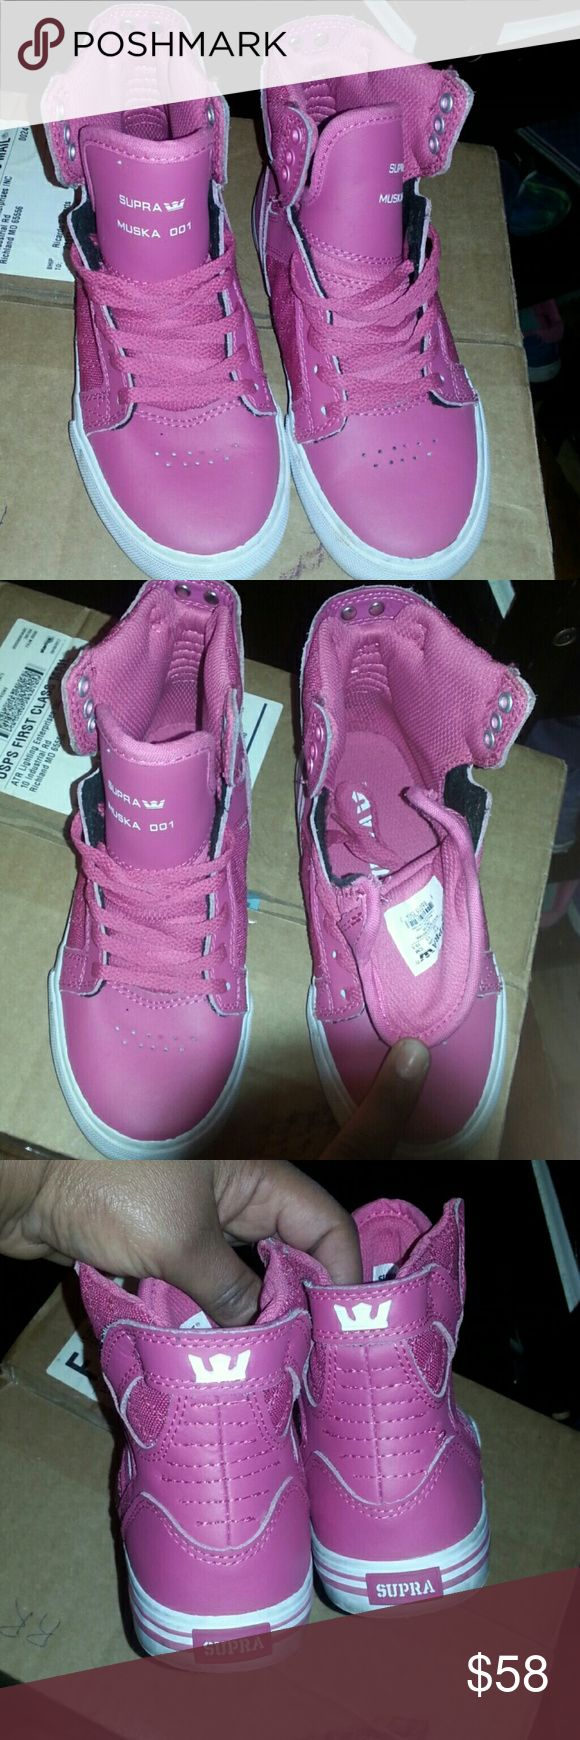 Brand New Kids Pink Supra Muska 001 Fun fit  Roomy  Stylish look  Great for a beautiful  little girl  Fashion forward wear  Sneakers brand new little dirt on sole for trying on once  Great buy  Excellent condition Supra Shoes Sneakers